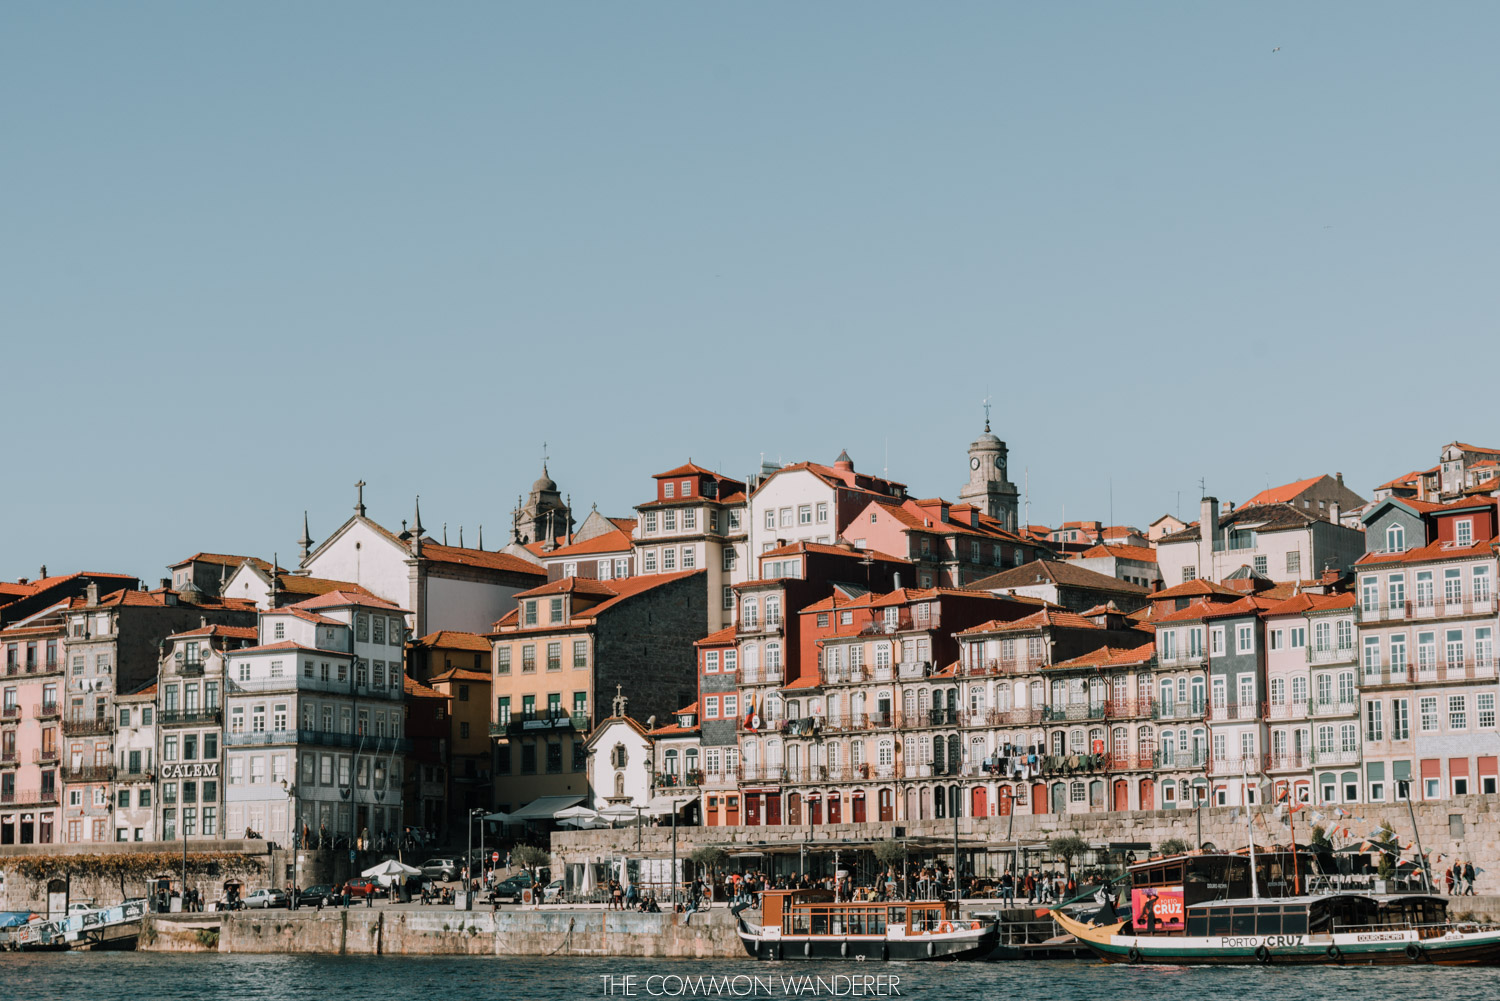 From urban lofts to rustic old-world getaways;when it comes to beautiful airbnbs, Porto has it all. We've rounded up our picks of the 10 best Porto Airbnbs you can stay in for under £100!